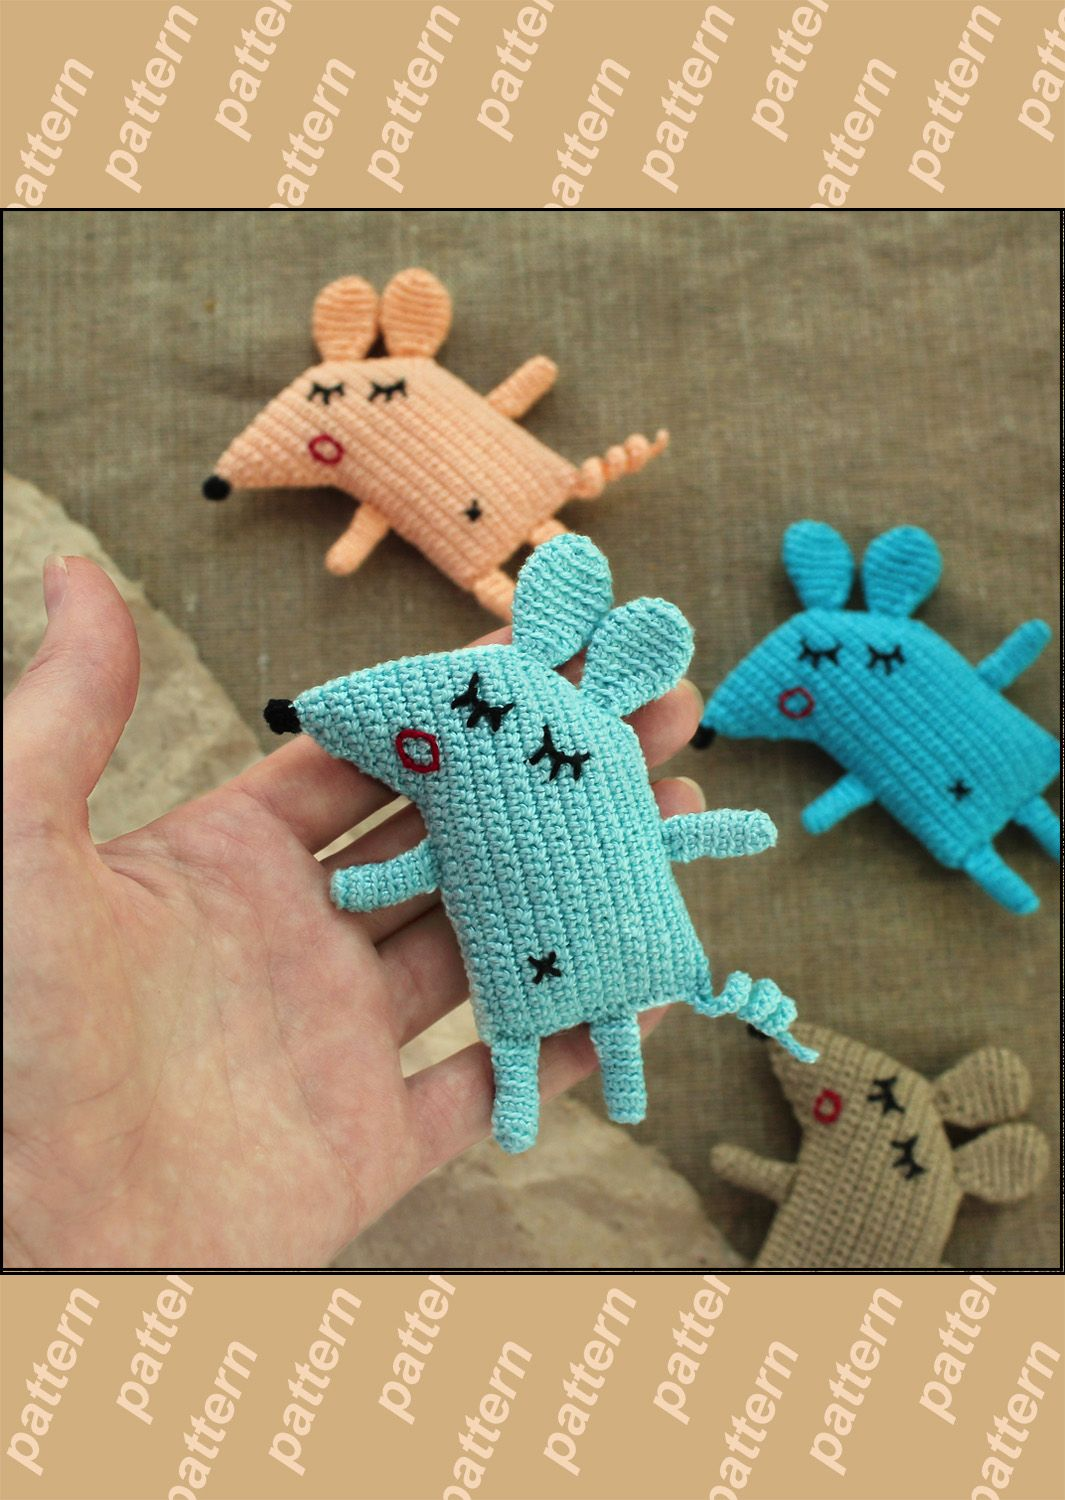 Сrochet baby toy small mouse pattern diy gift idea